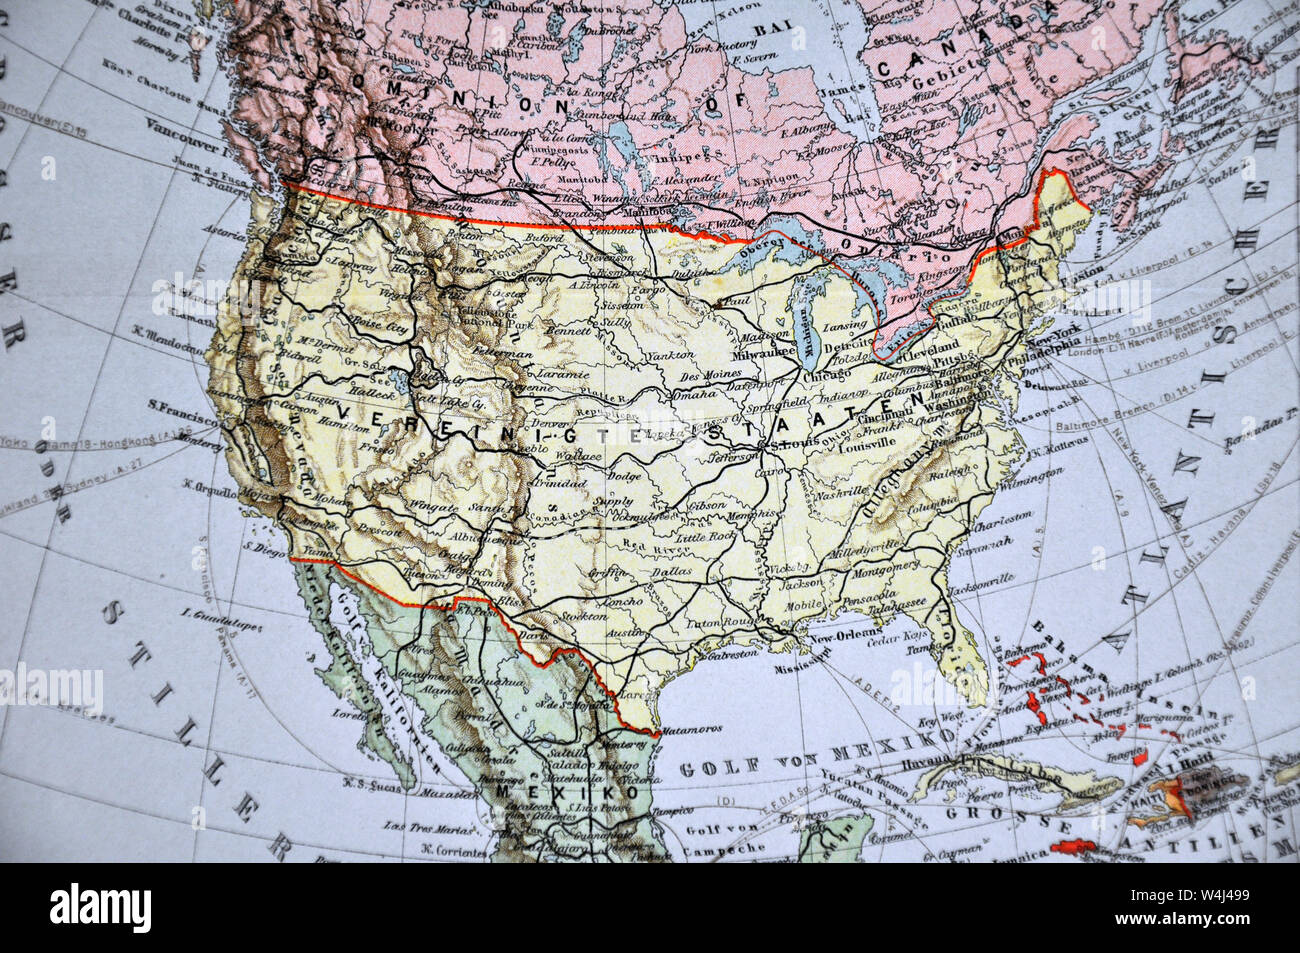 1900 Meyer Map of North America showing Canada, the United ... on lighthouse of america, alaska map united states, alaska usa map, alaska map with cities, alaska map canada, alaska map china, mexico of america, alaska north america, home of america, alaska map gold, canada of america,